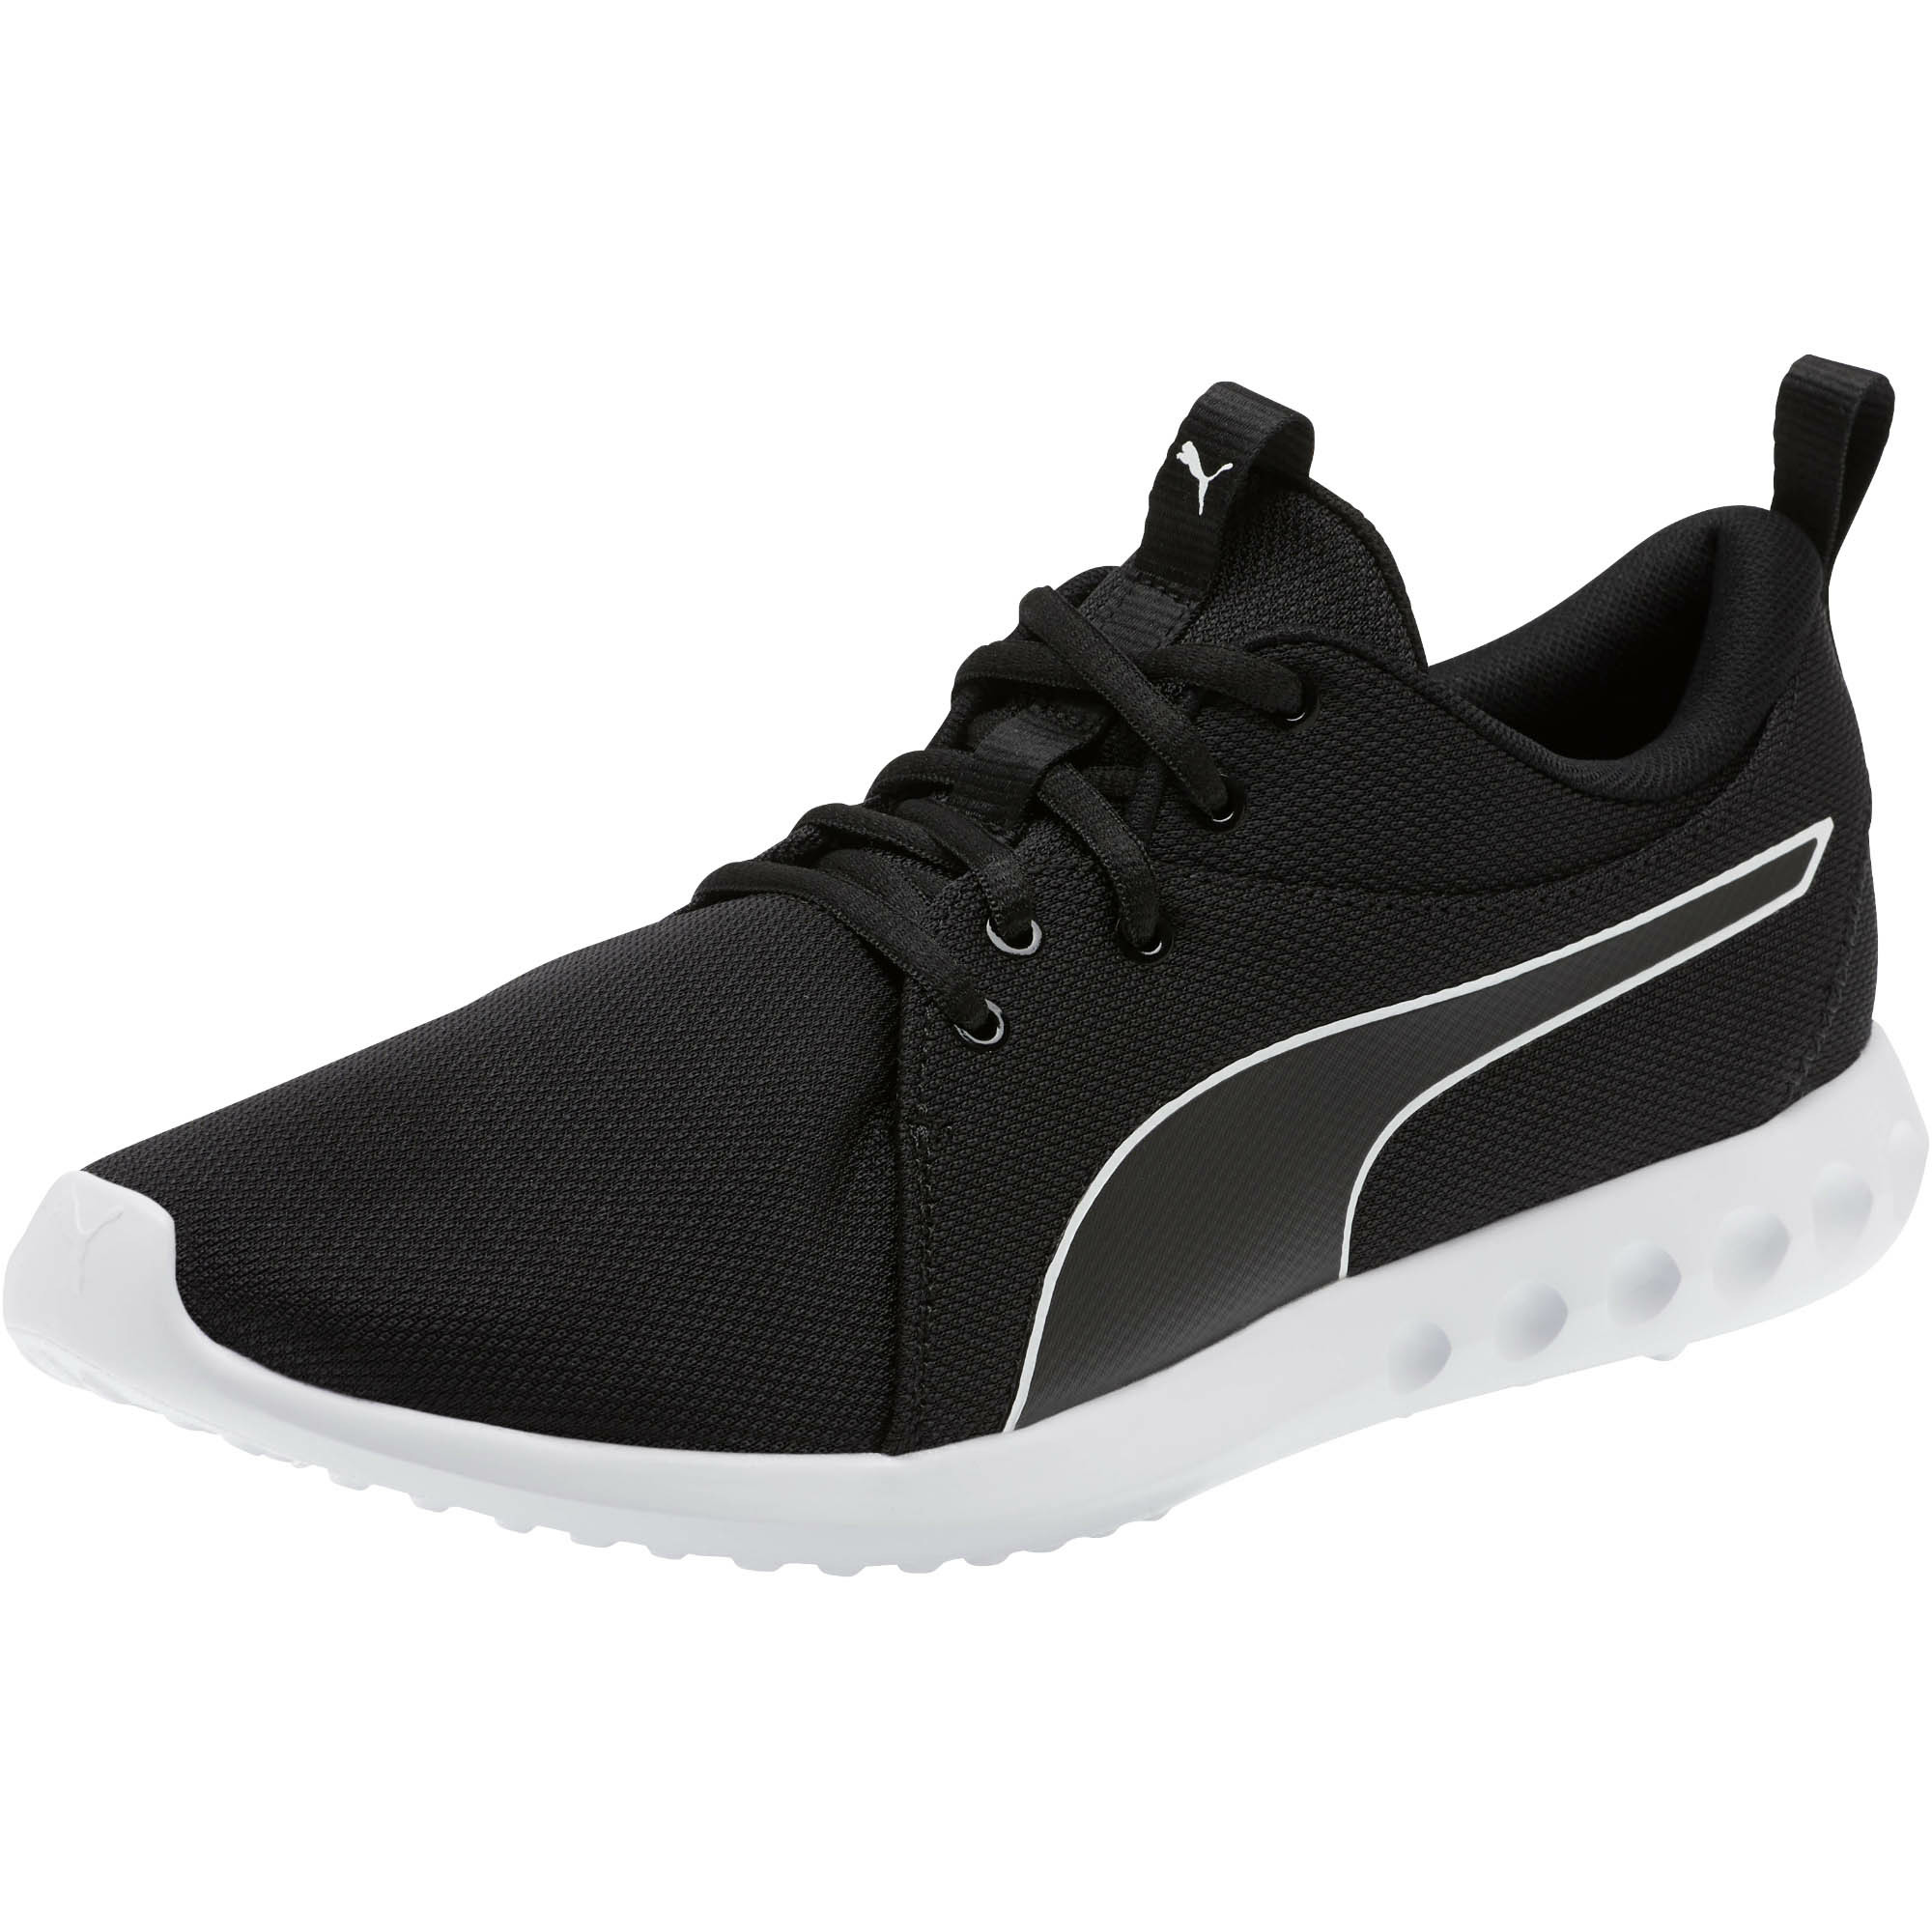 PUMA-Men-039-s-Carson-2-Cosmo-Running-Shoes thumbnail 4